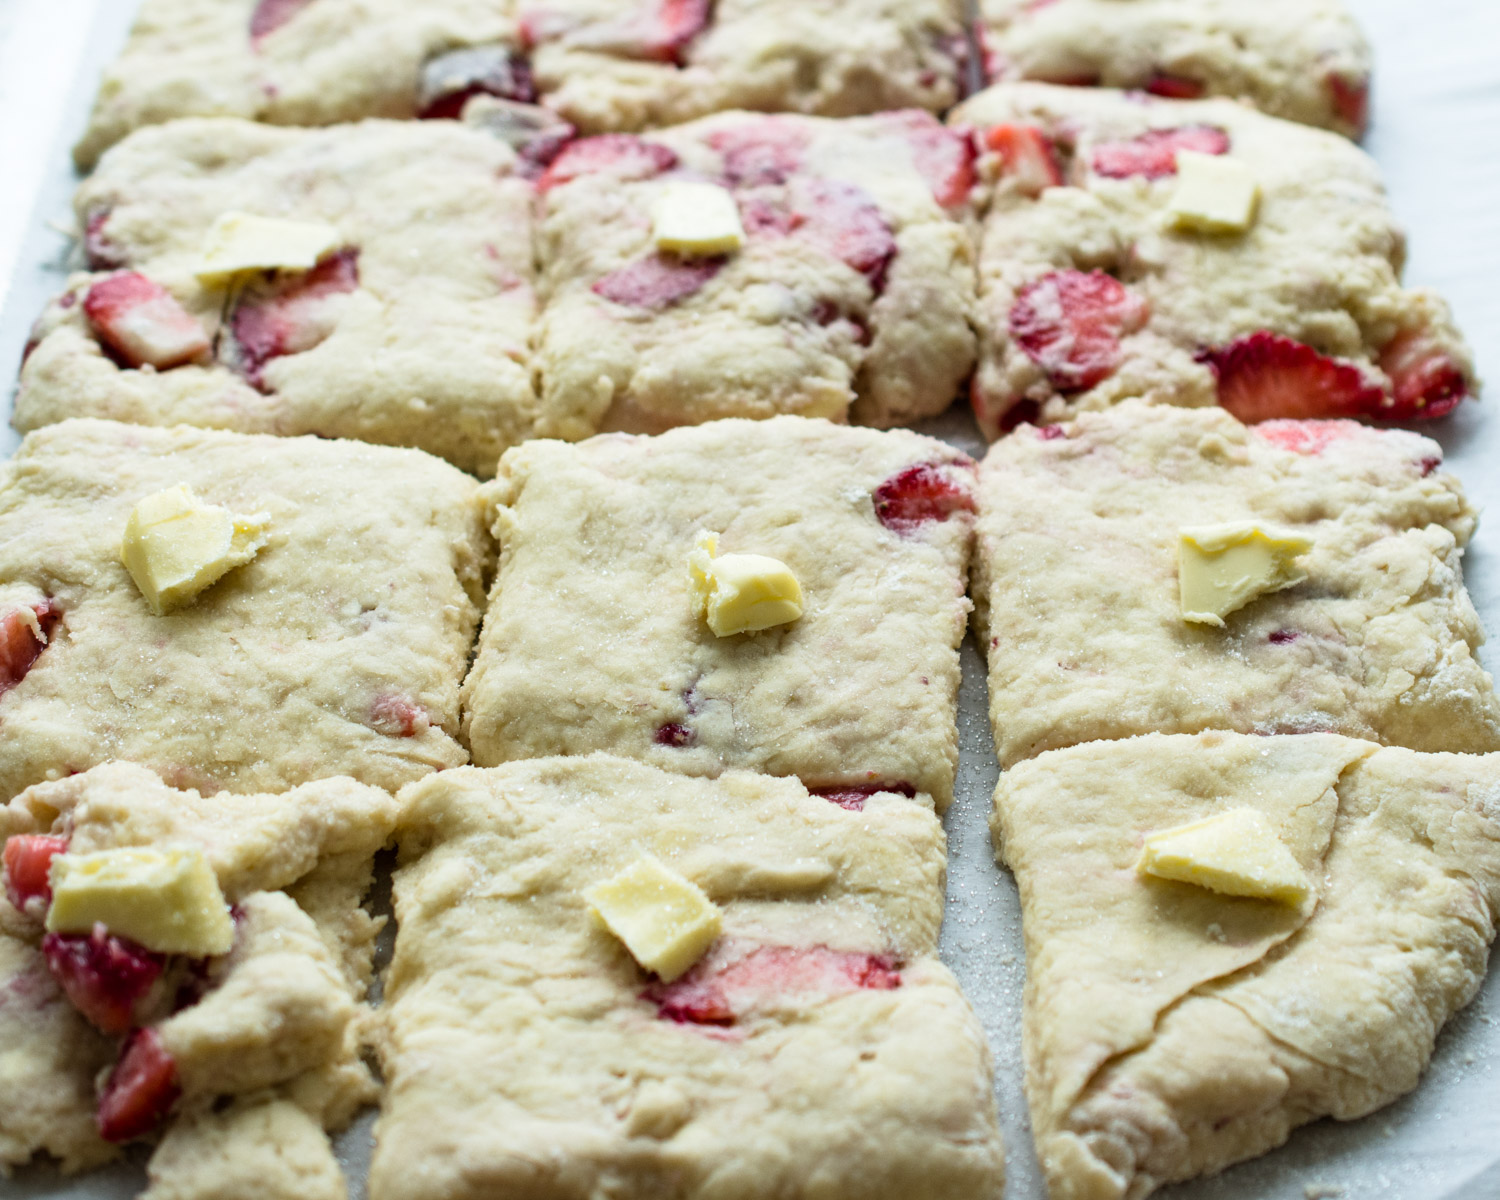 Strawberry biscuit dough ready to bake.